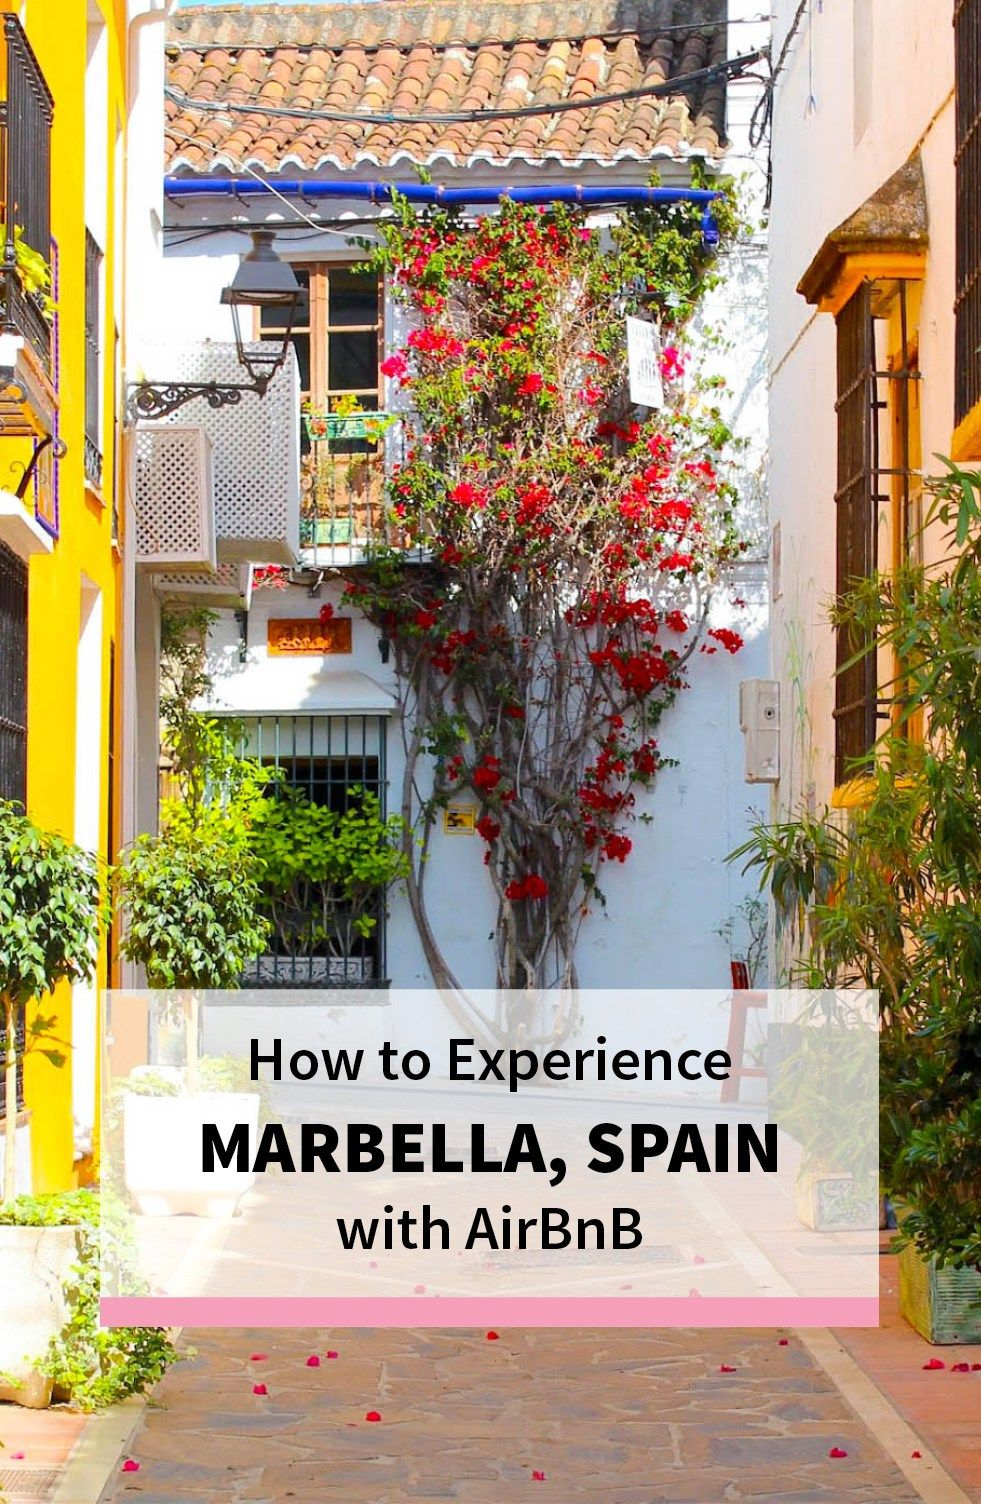 How To Experience Marbella Spain With Airbnb Gina Alyse Marbella Spain Marbella Spain